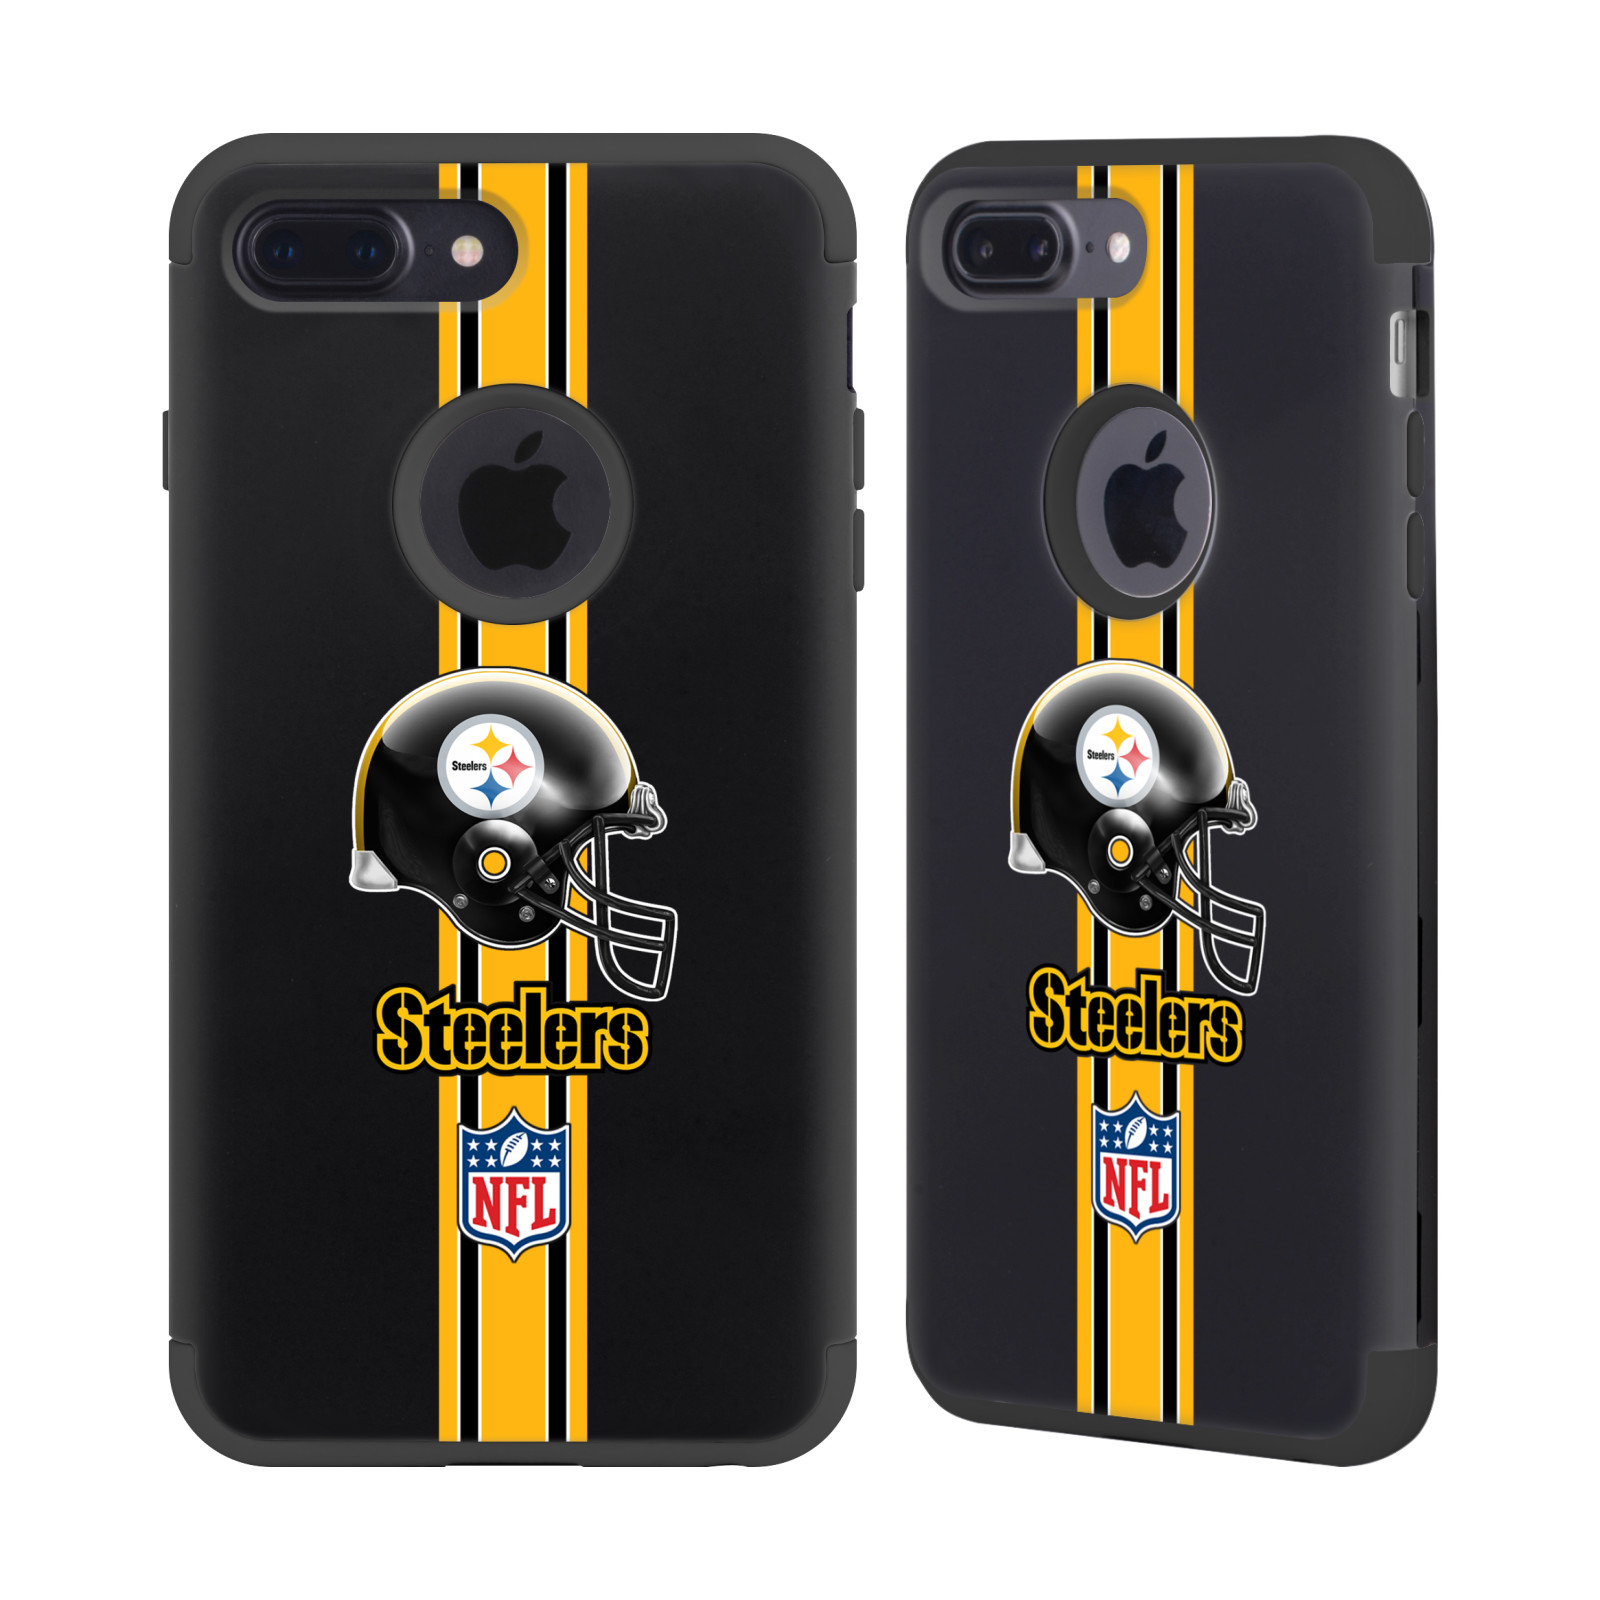 NFL-PITTSBURGH-STEELERS-LOGO-2-BLACK-GUARDIAN-CASE-FOR-APPLE-iPHONE-PHONES